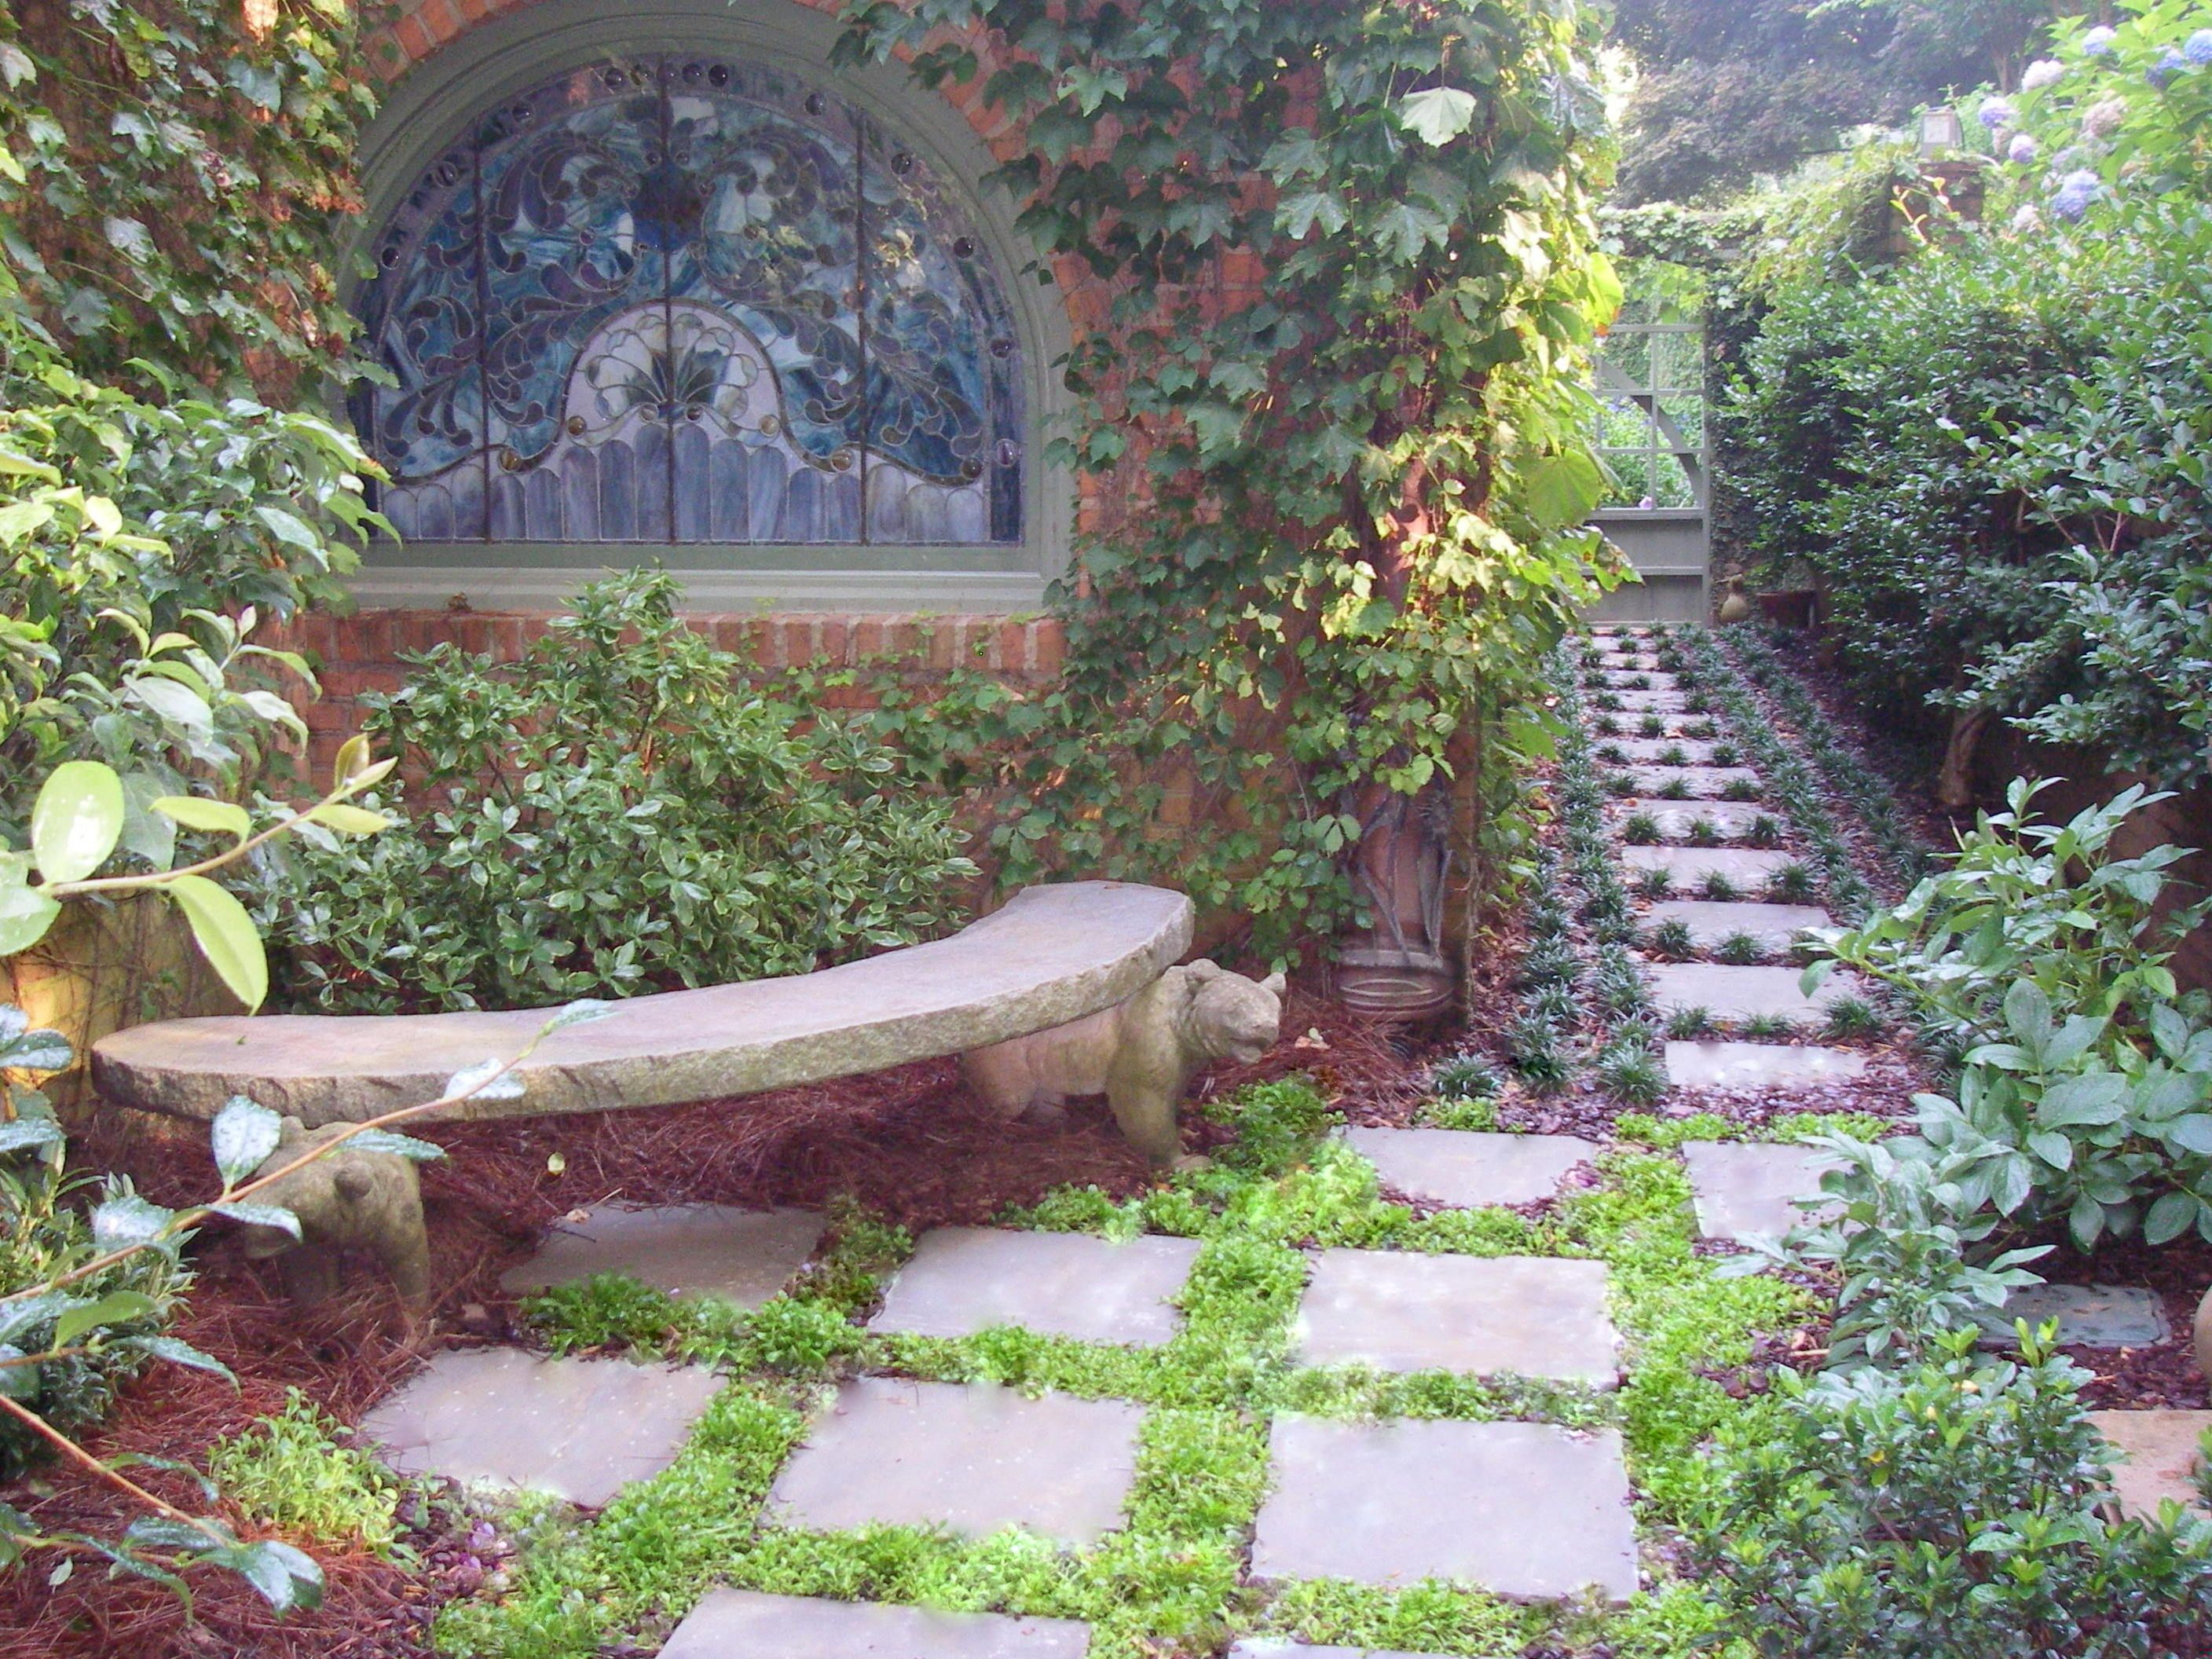 mediation garden sanctuary outdoor haven paths